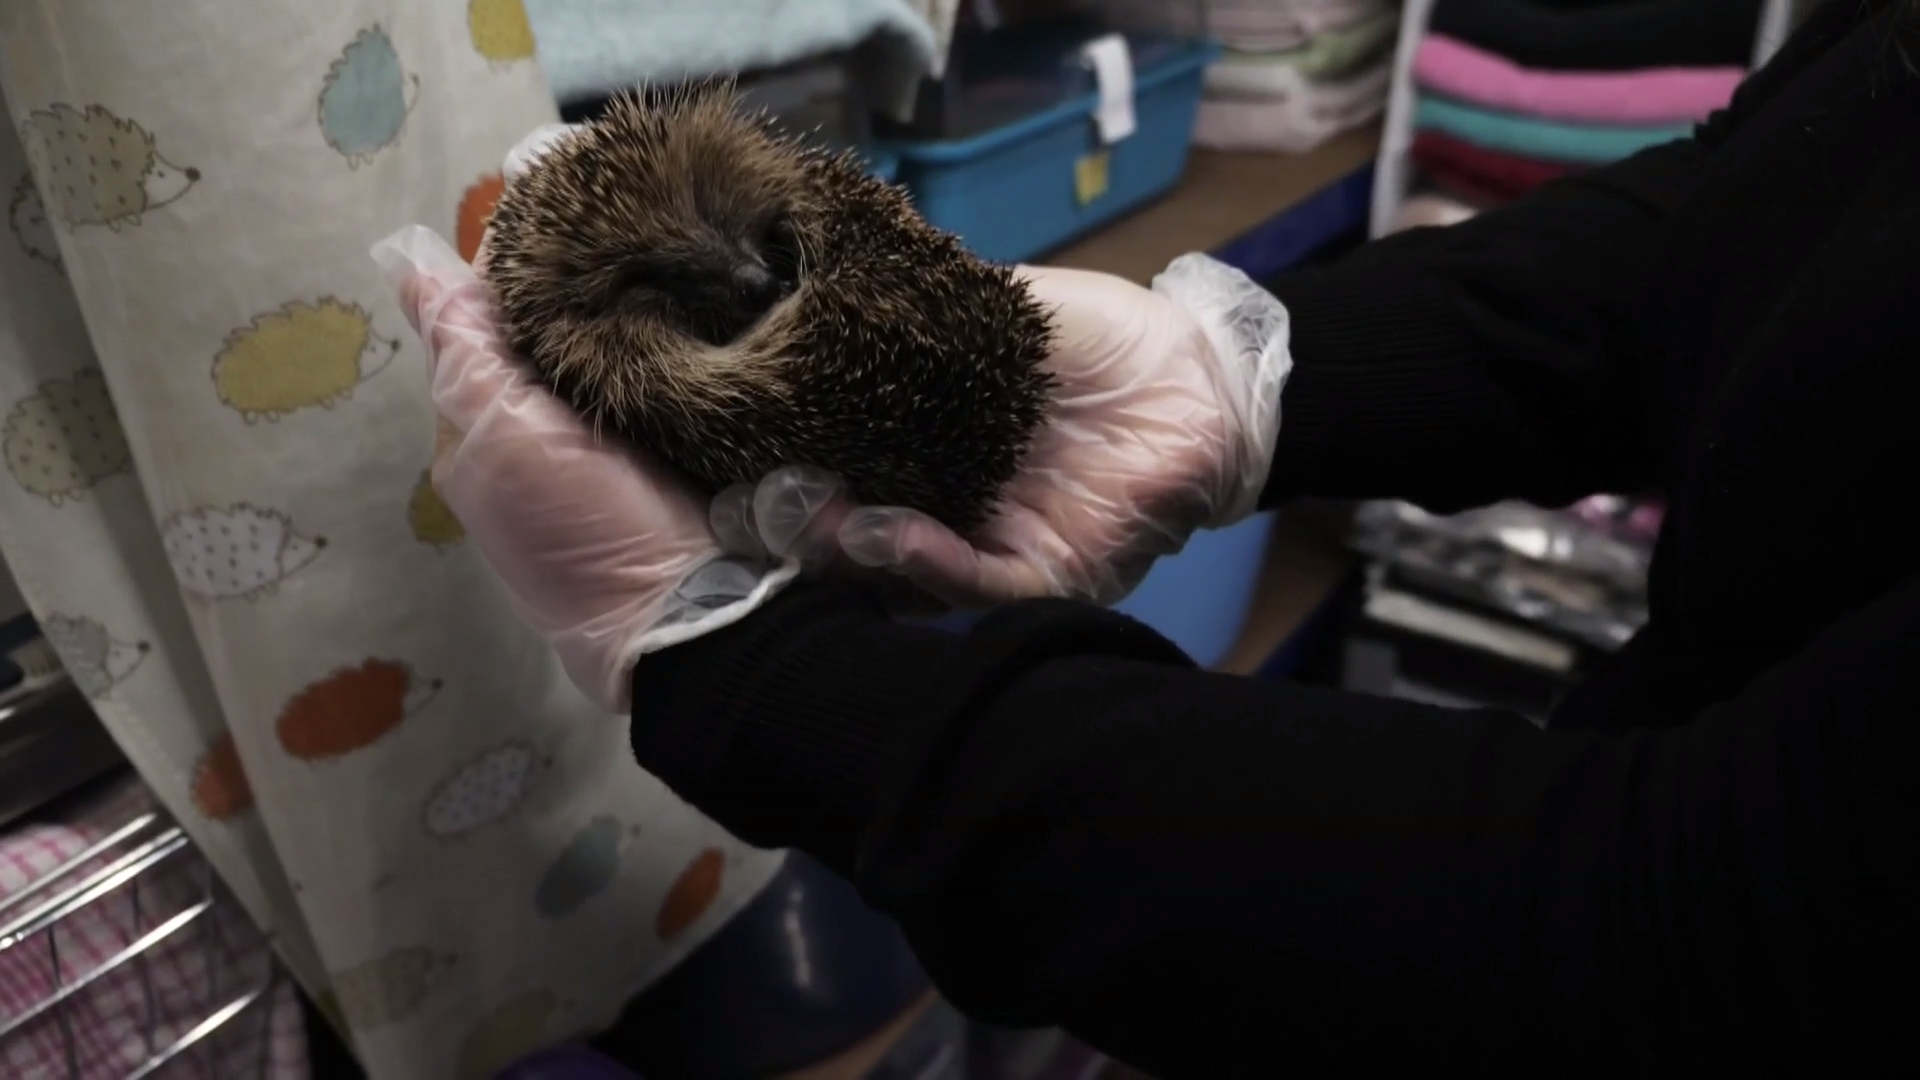 GdBj2nuR2v0 image 1920x1080 - Why Britain's hedgehogs are in serious trouble – Channel 4 News